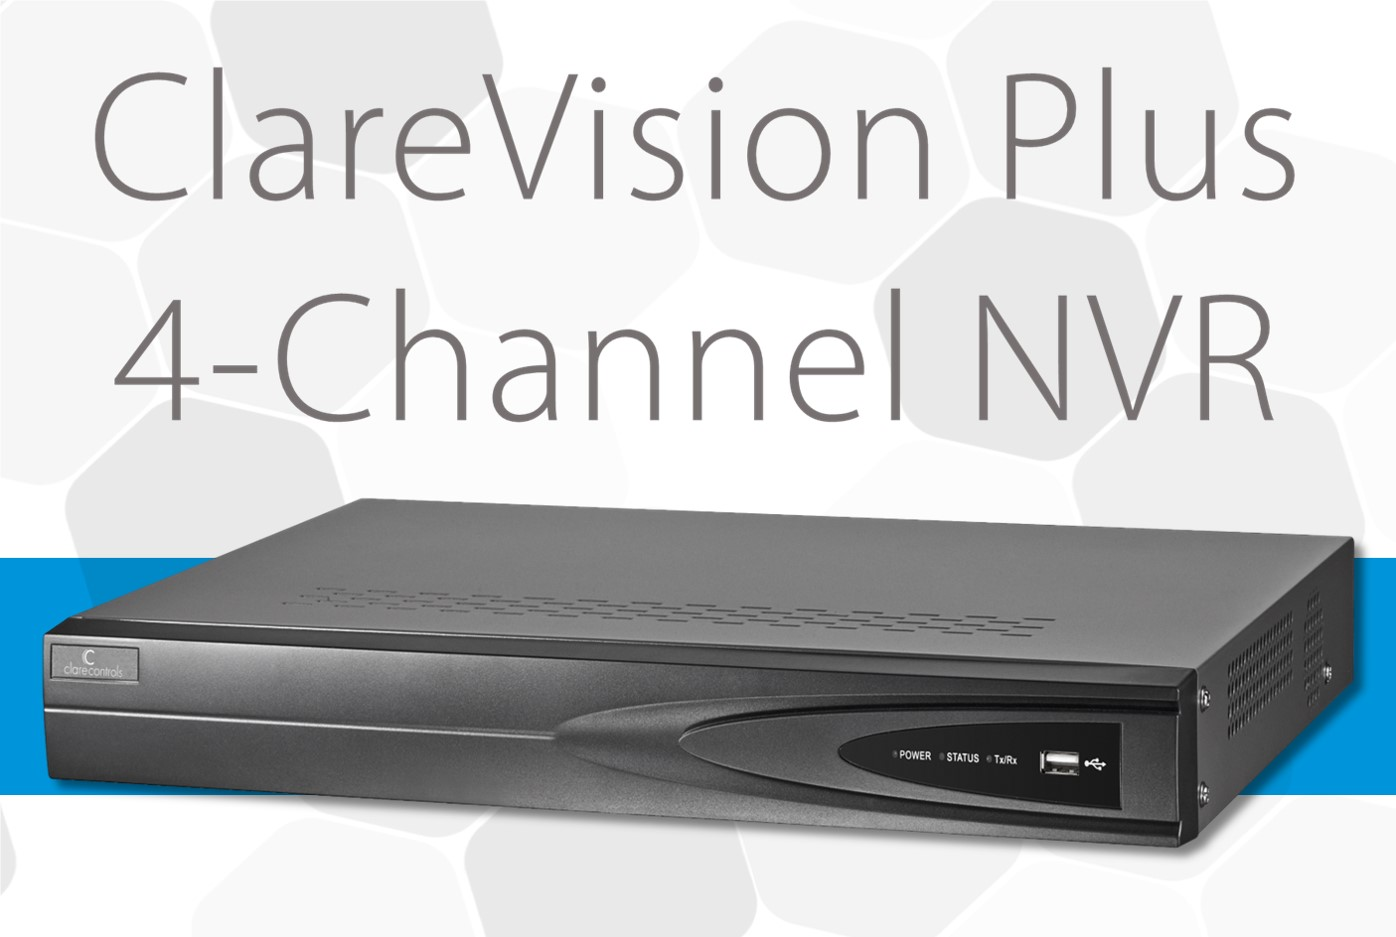 Clare's New ClareVision Plus 4-Channel NVR